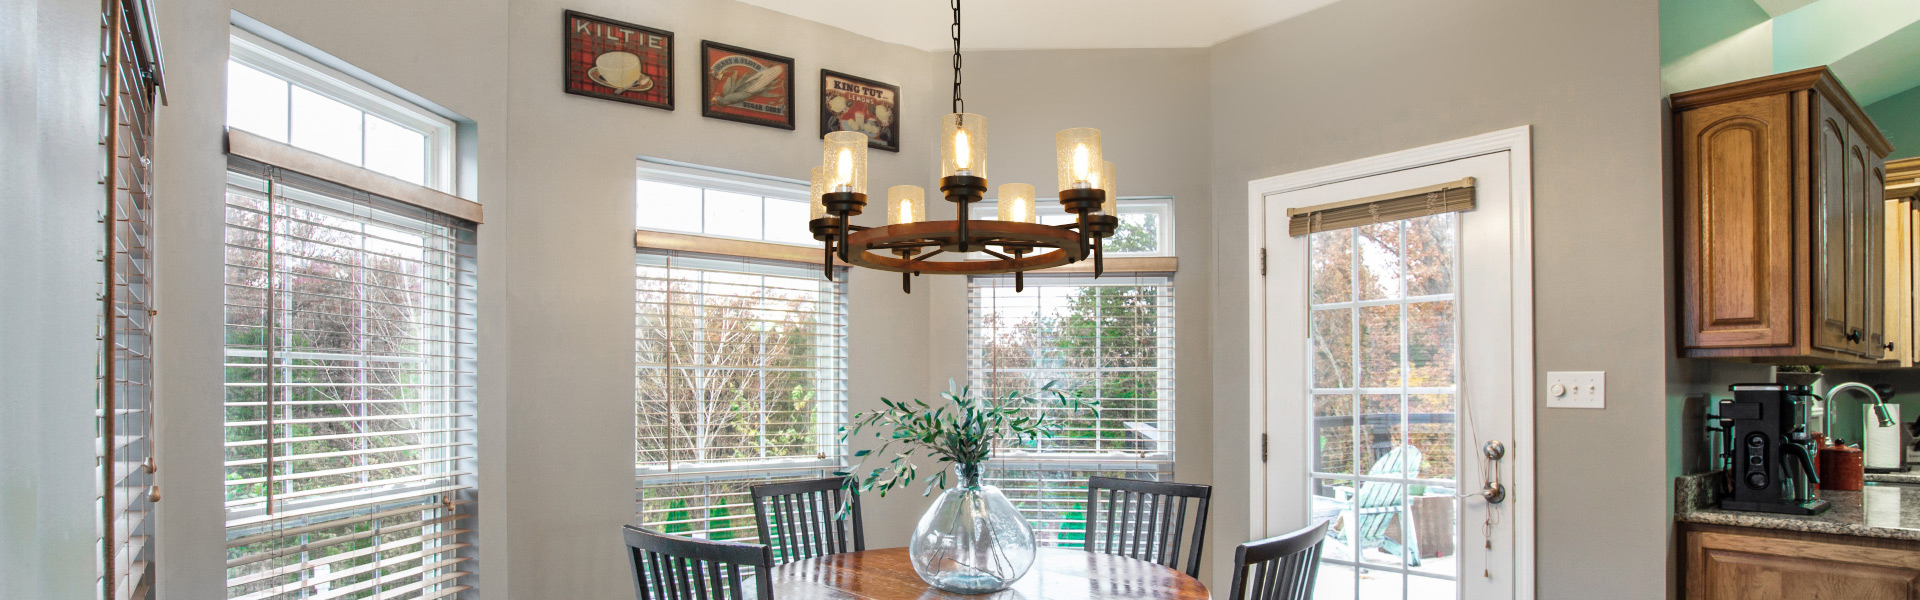 Pendant Lamp with Glass Shade